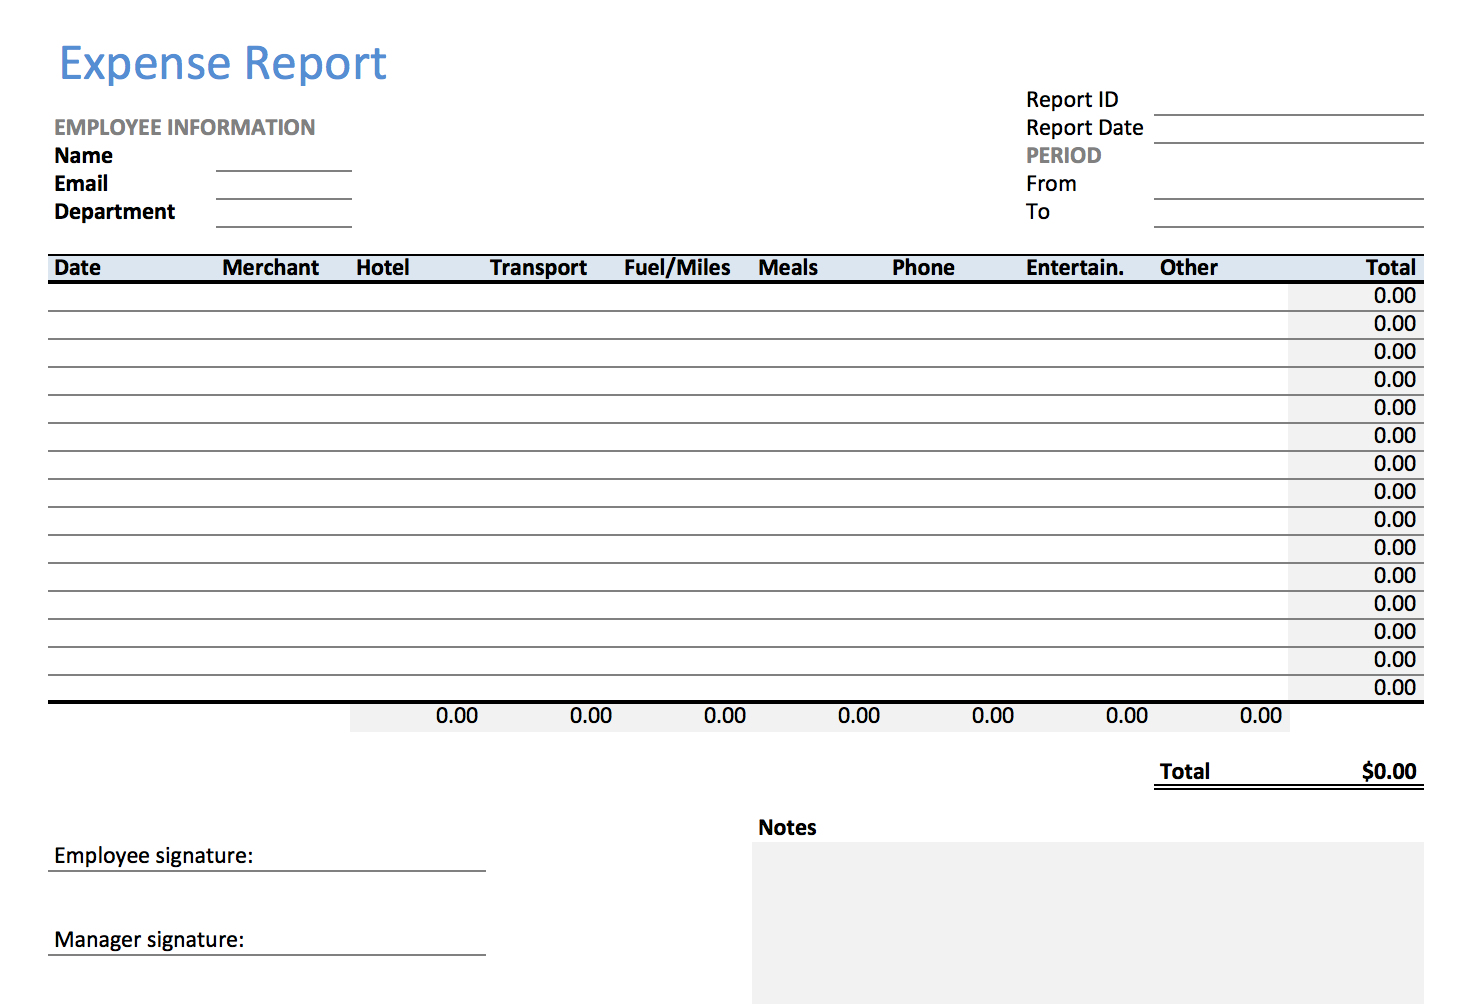 Excel Expense Report  Expense Report Example